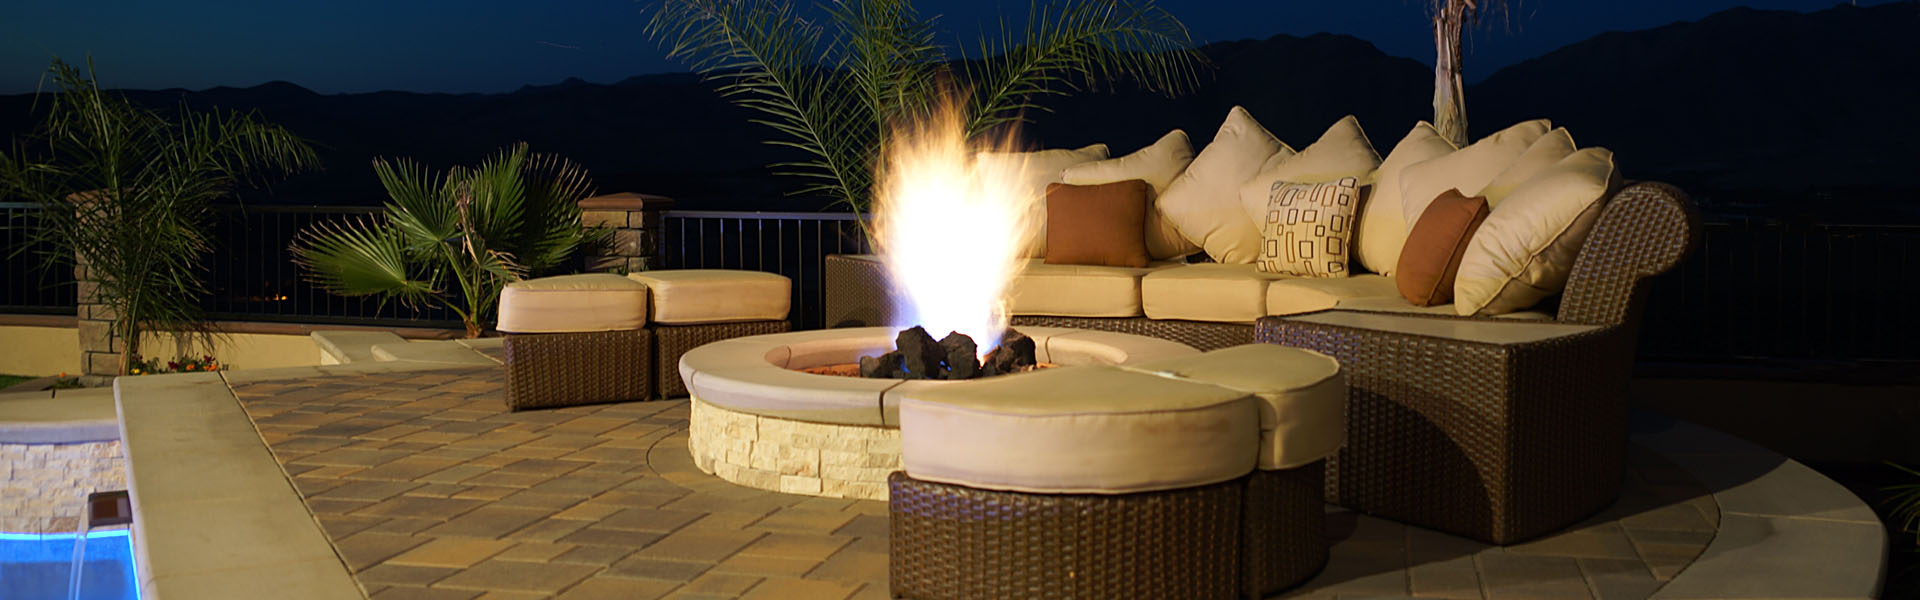 Fire Pit Lounge Slide